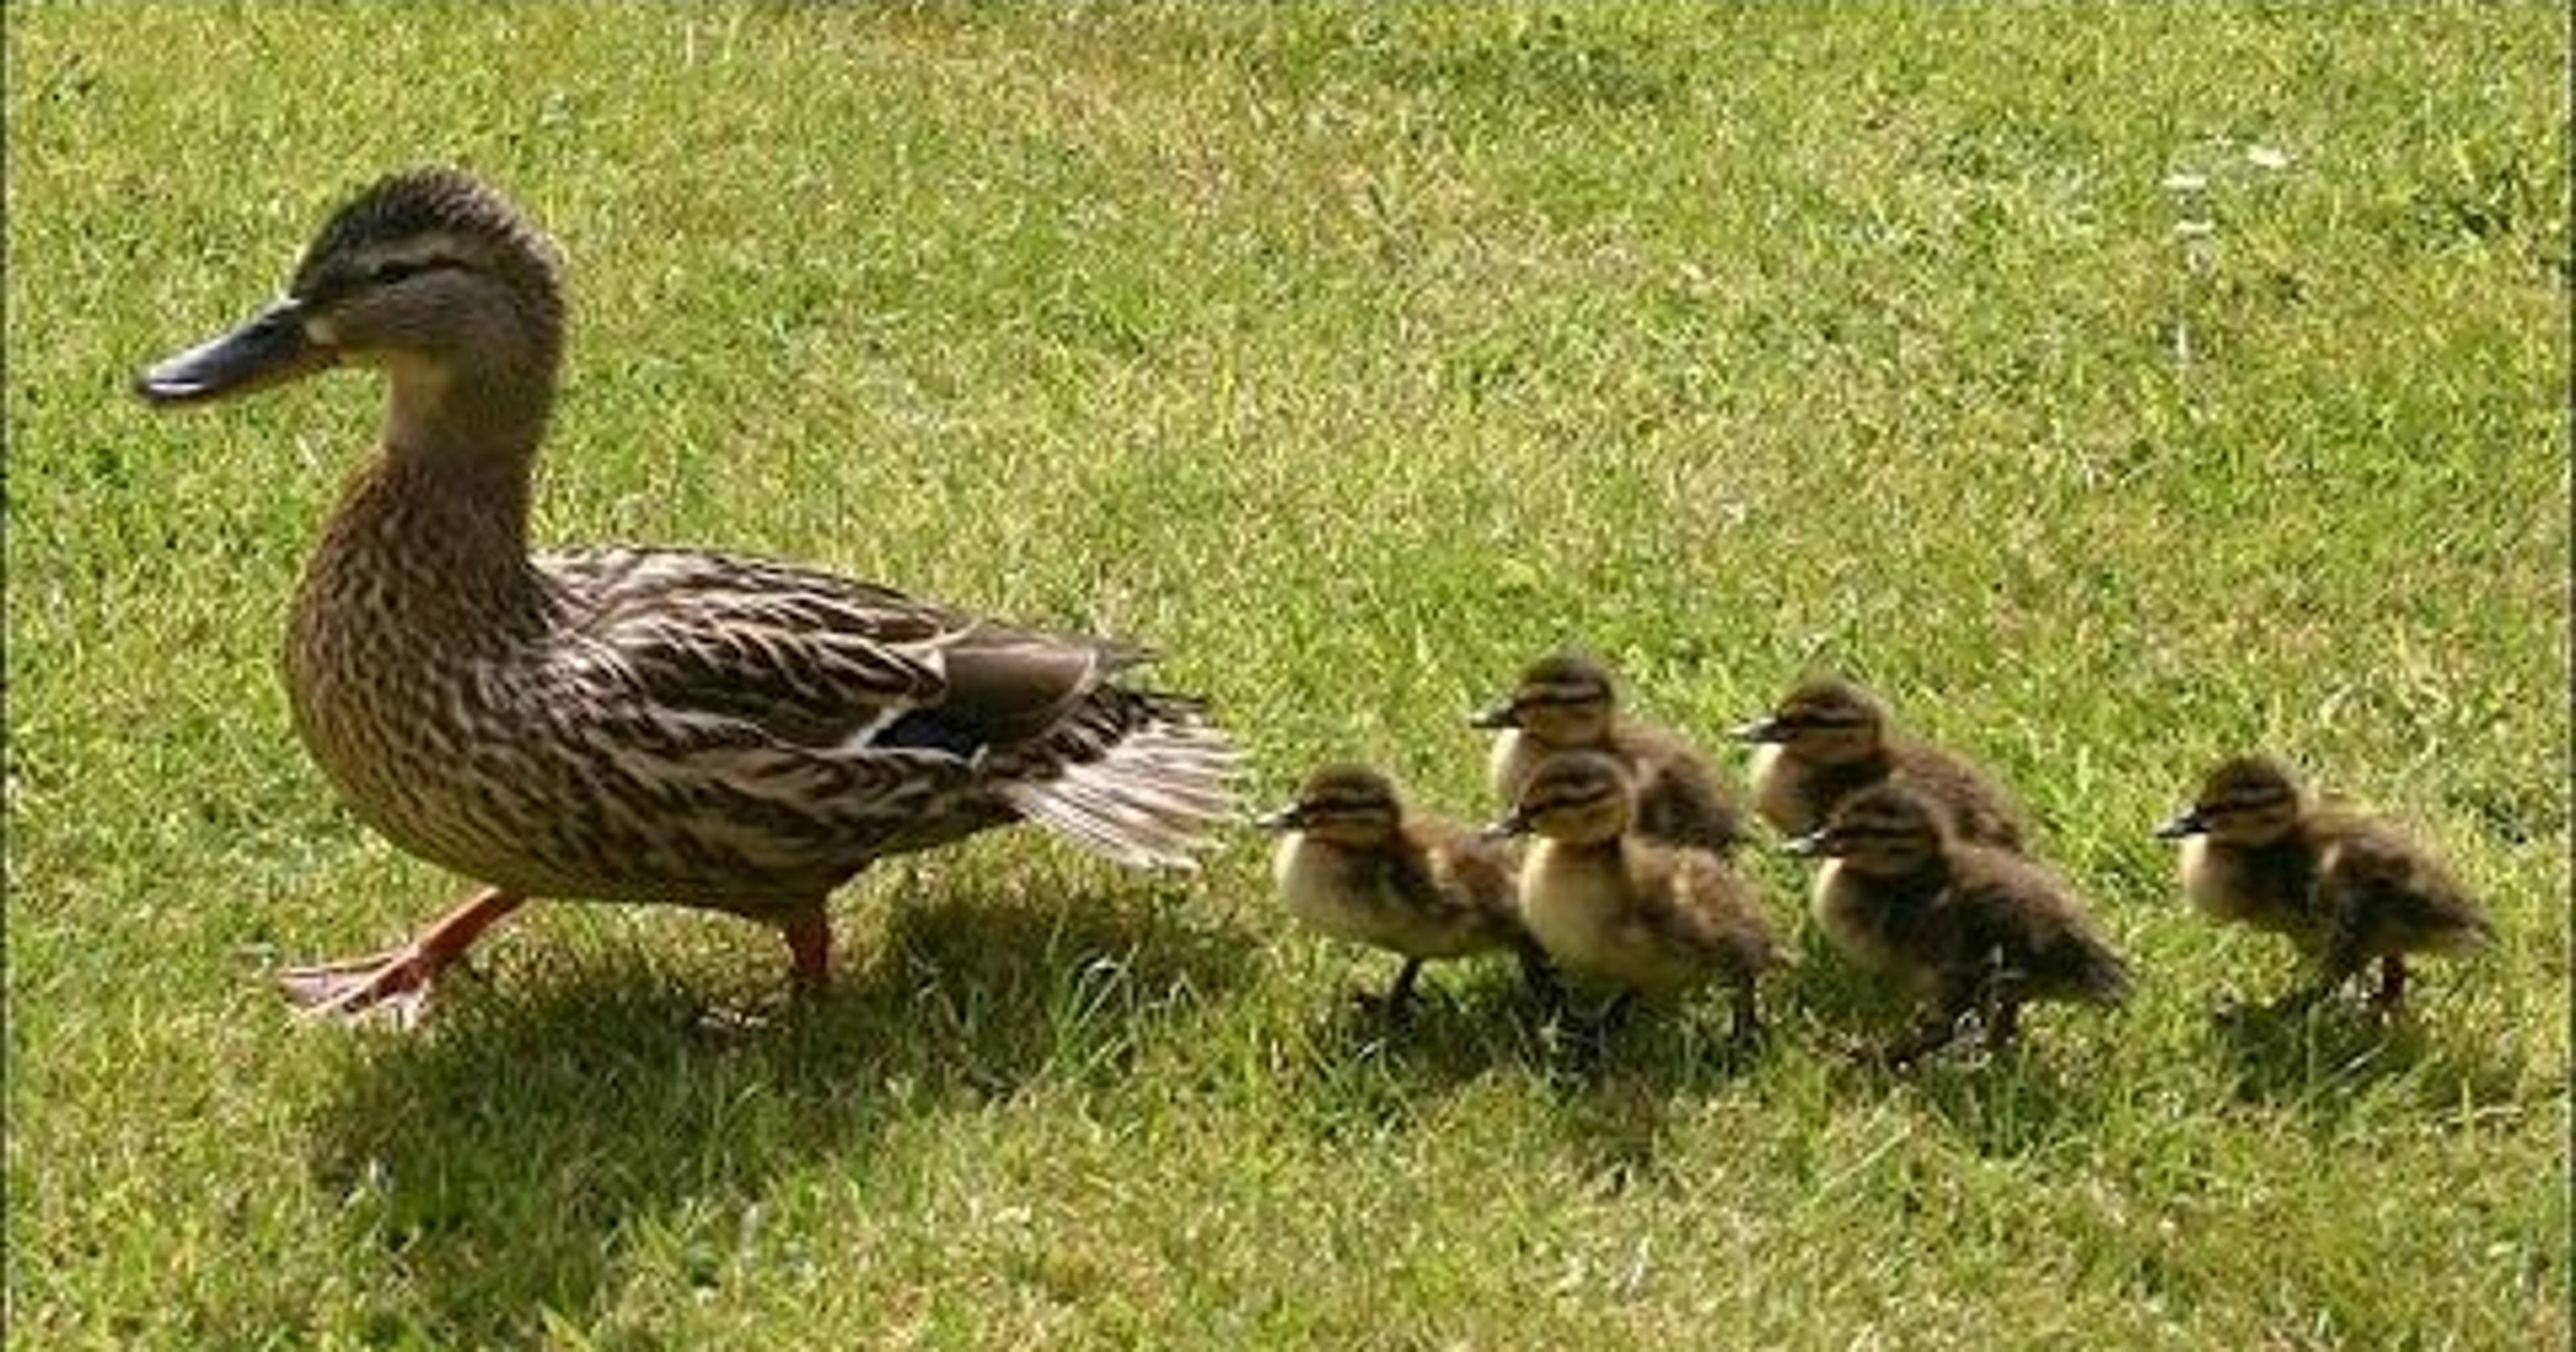 WATCH: Baby ducks fly ...